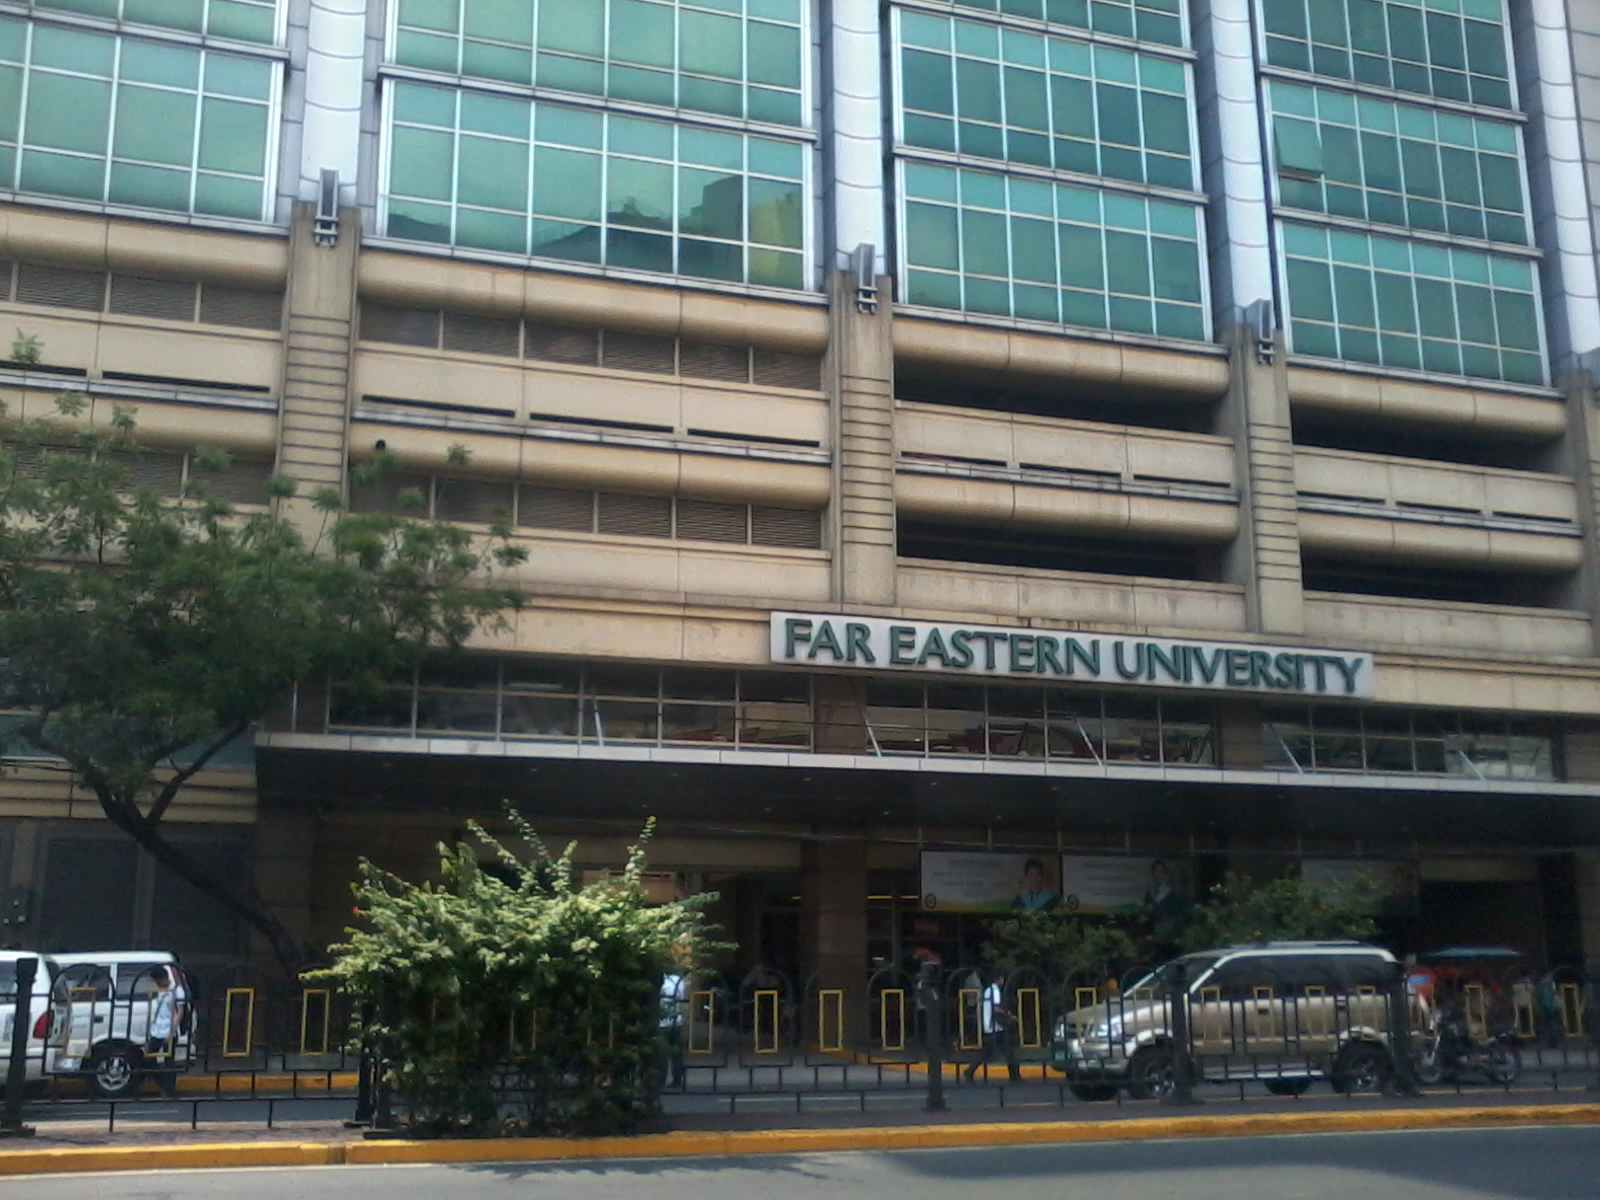 Far Eastern University front view.jpg